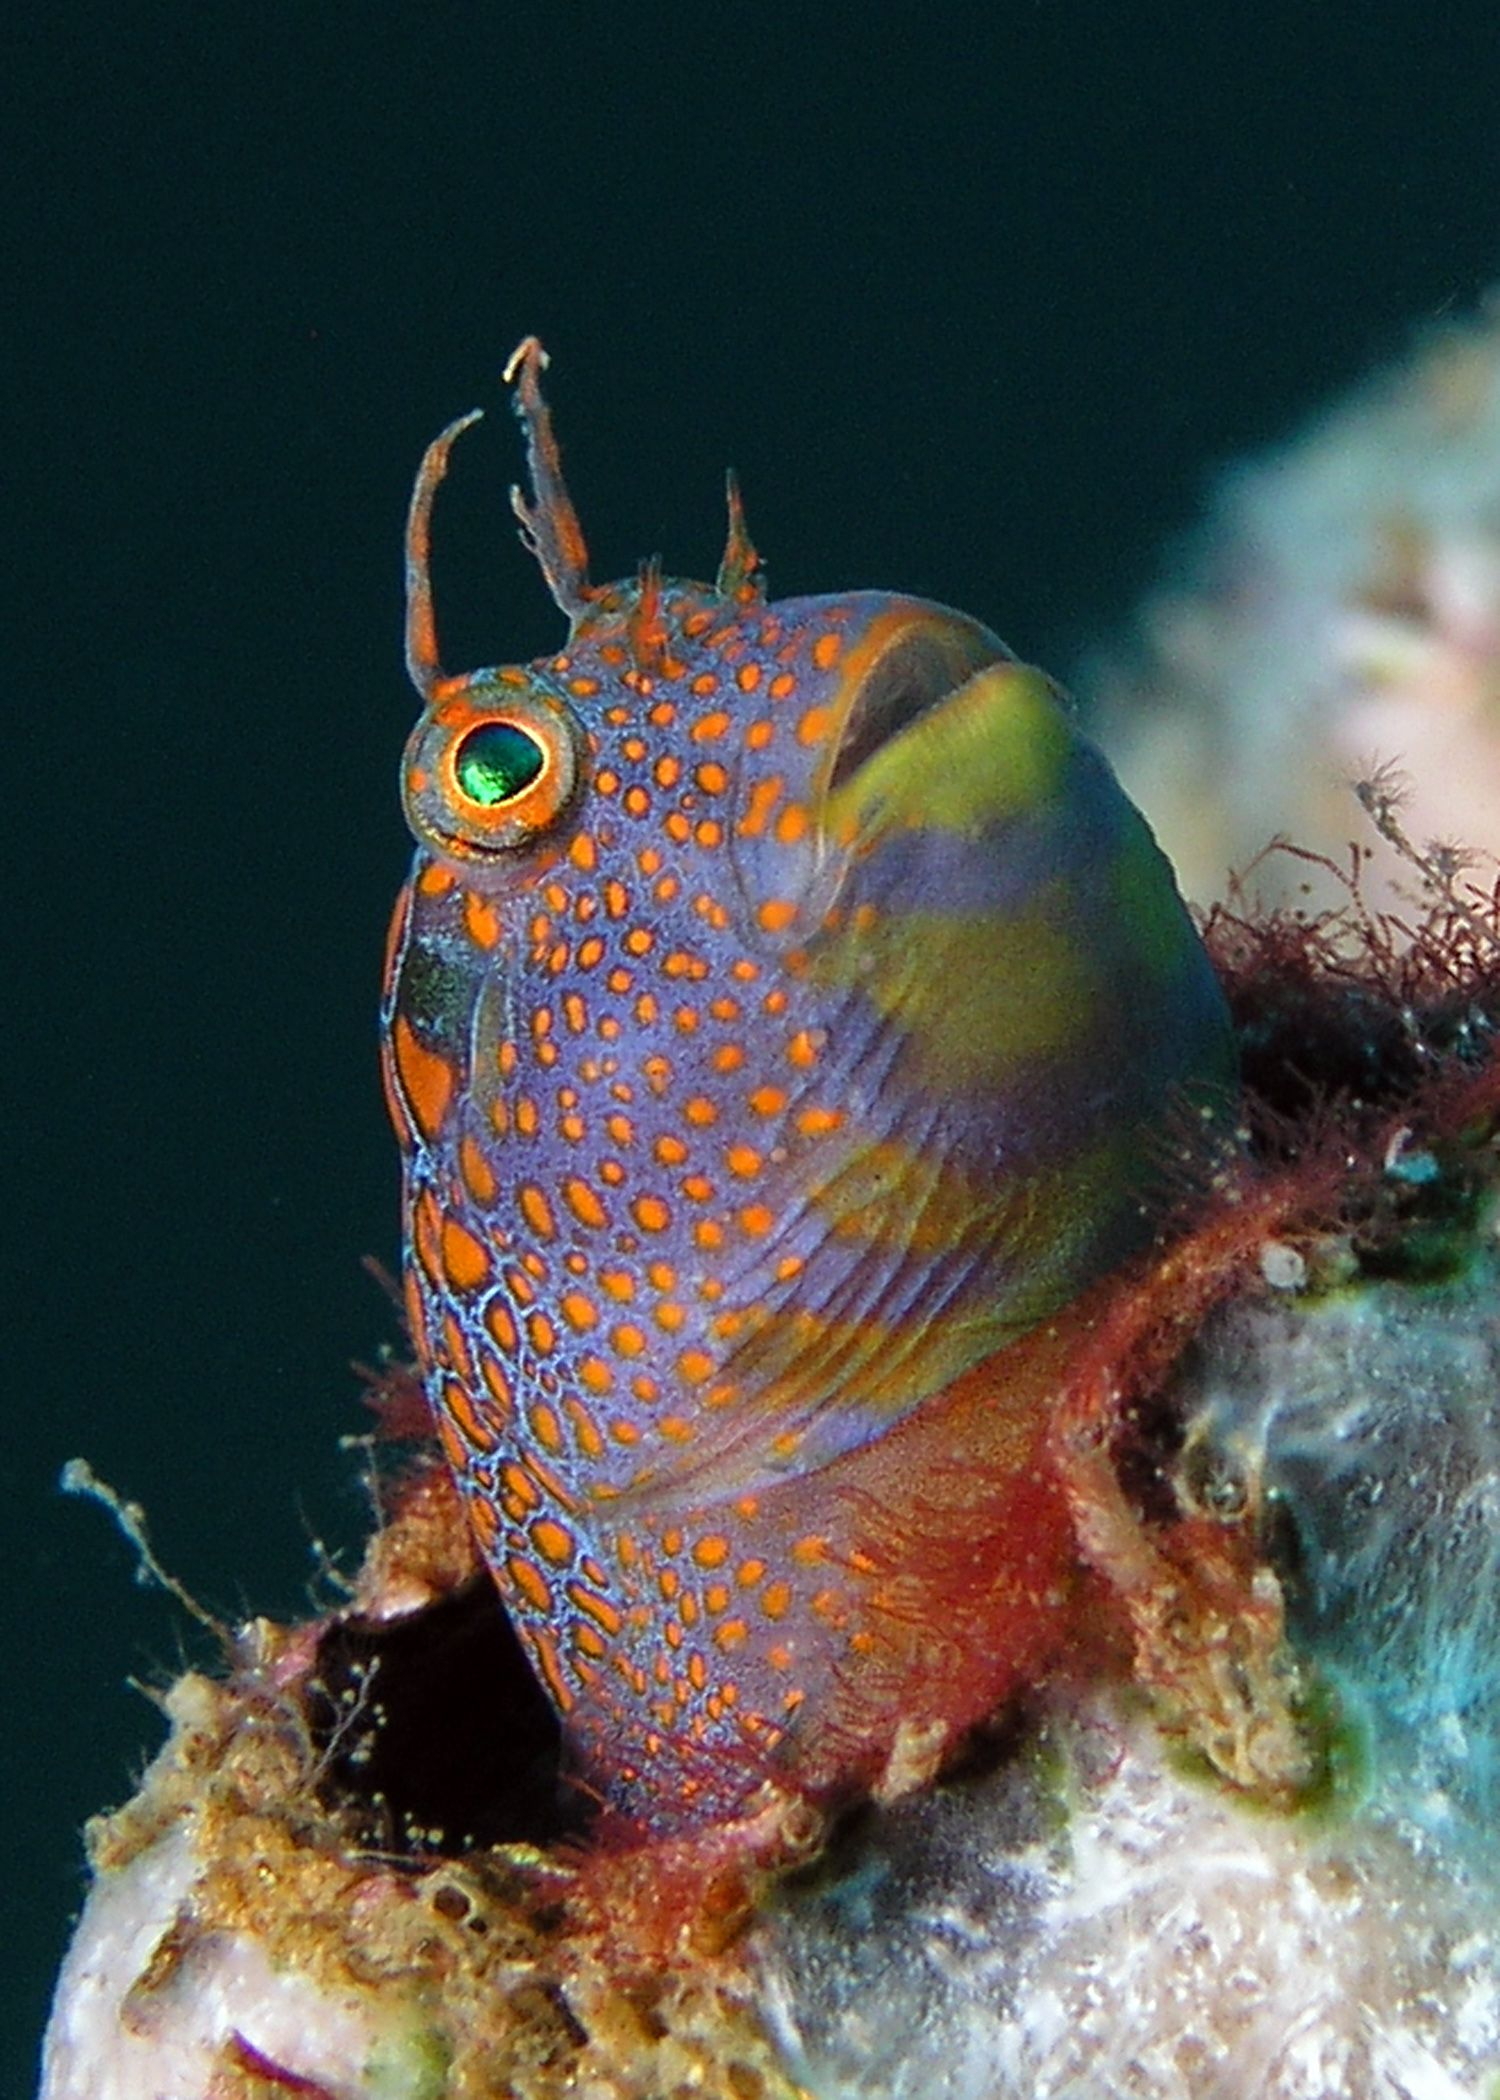 tessellated blenny one of my favorite types of fish is the blenny